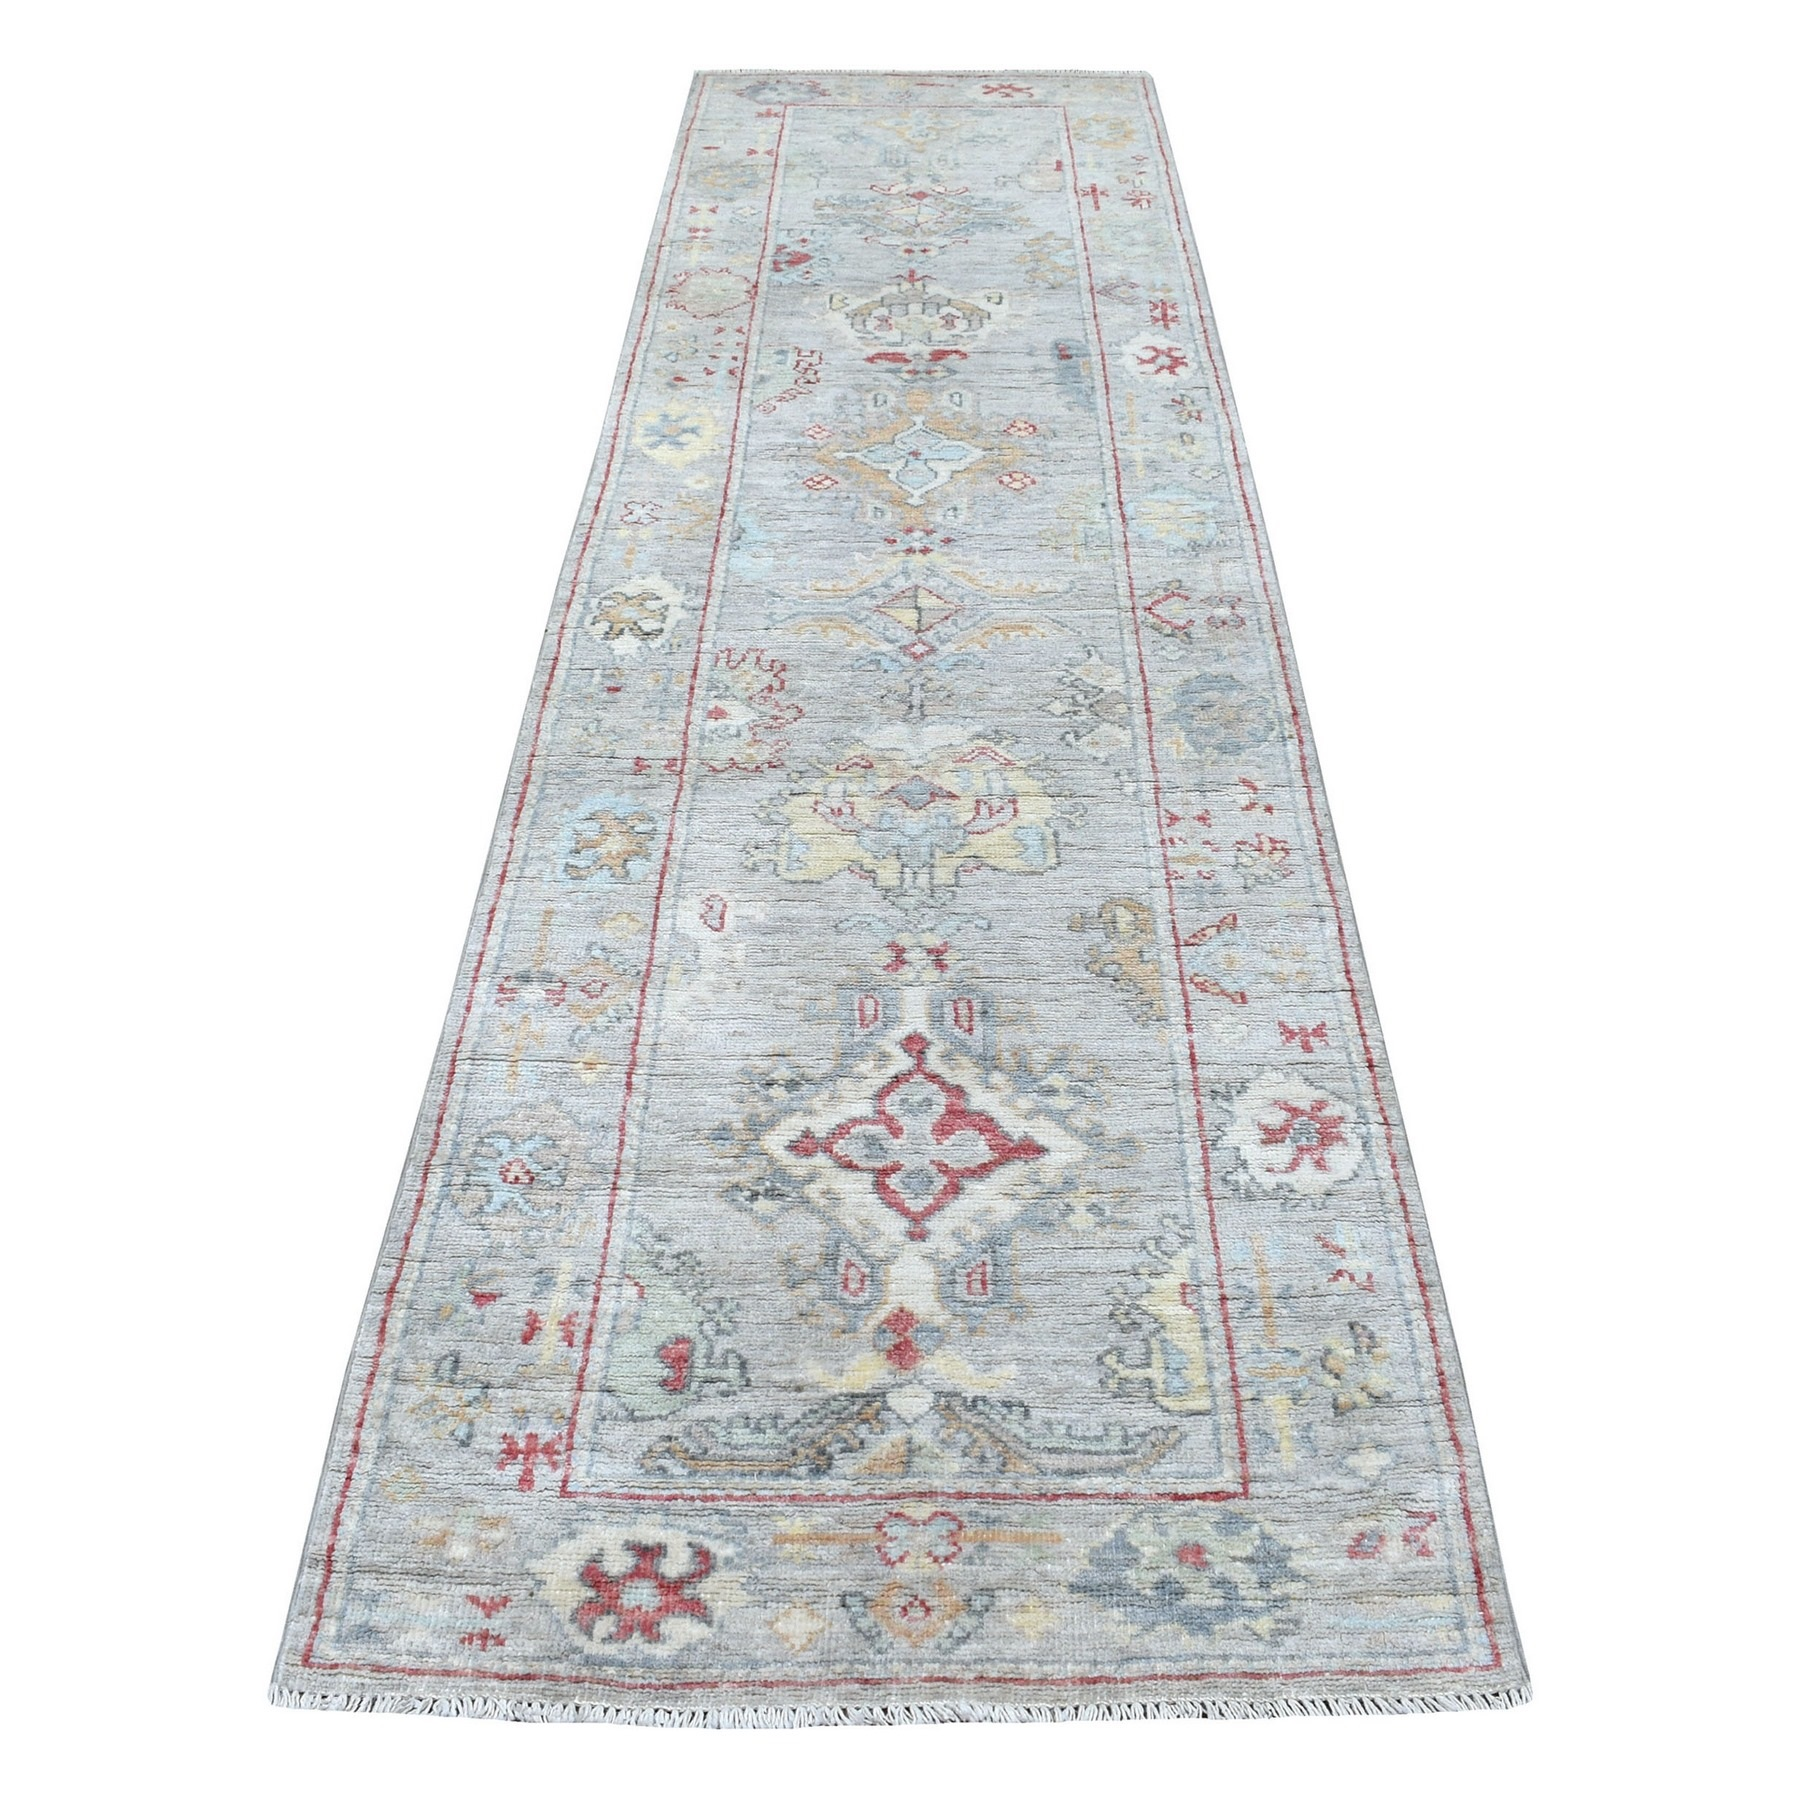 "3'x10'4"" Light Gray Hand Woven Soft And Supple Wool Angora Oushak With Soft Colors Oriental Runner Rug"